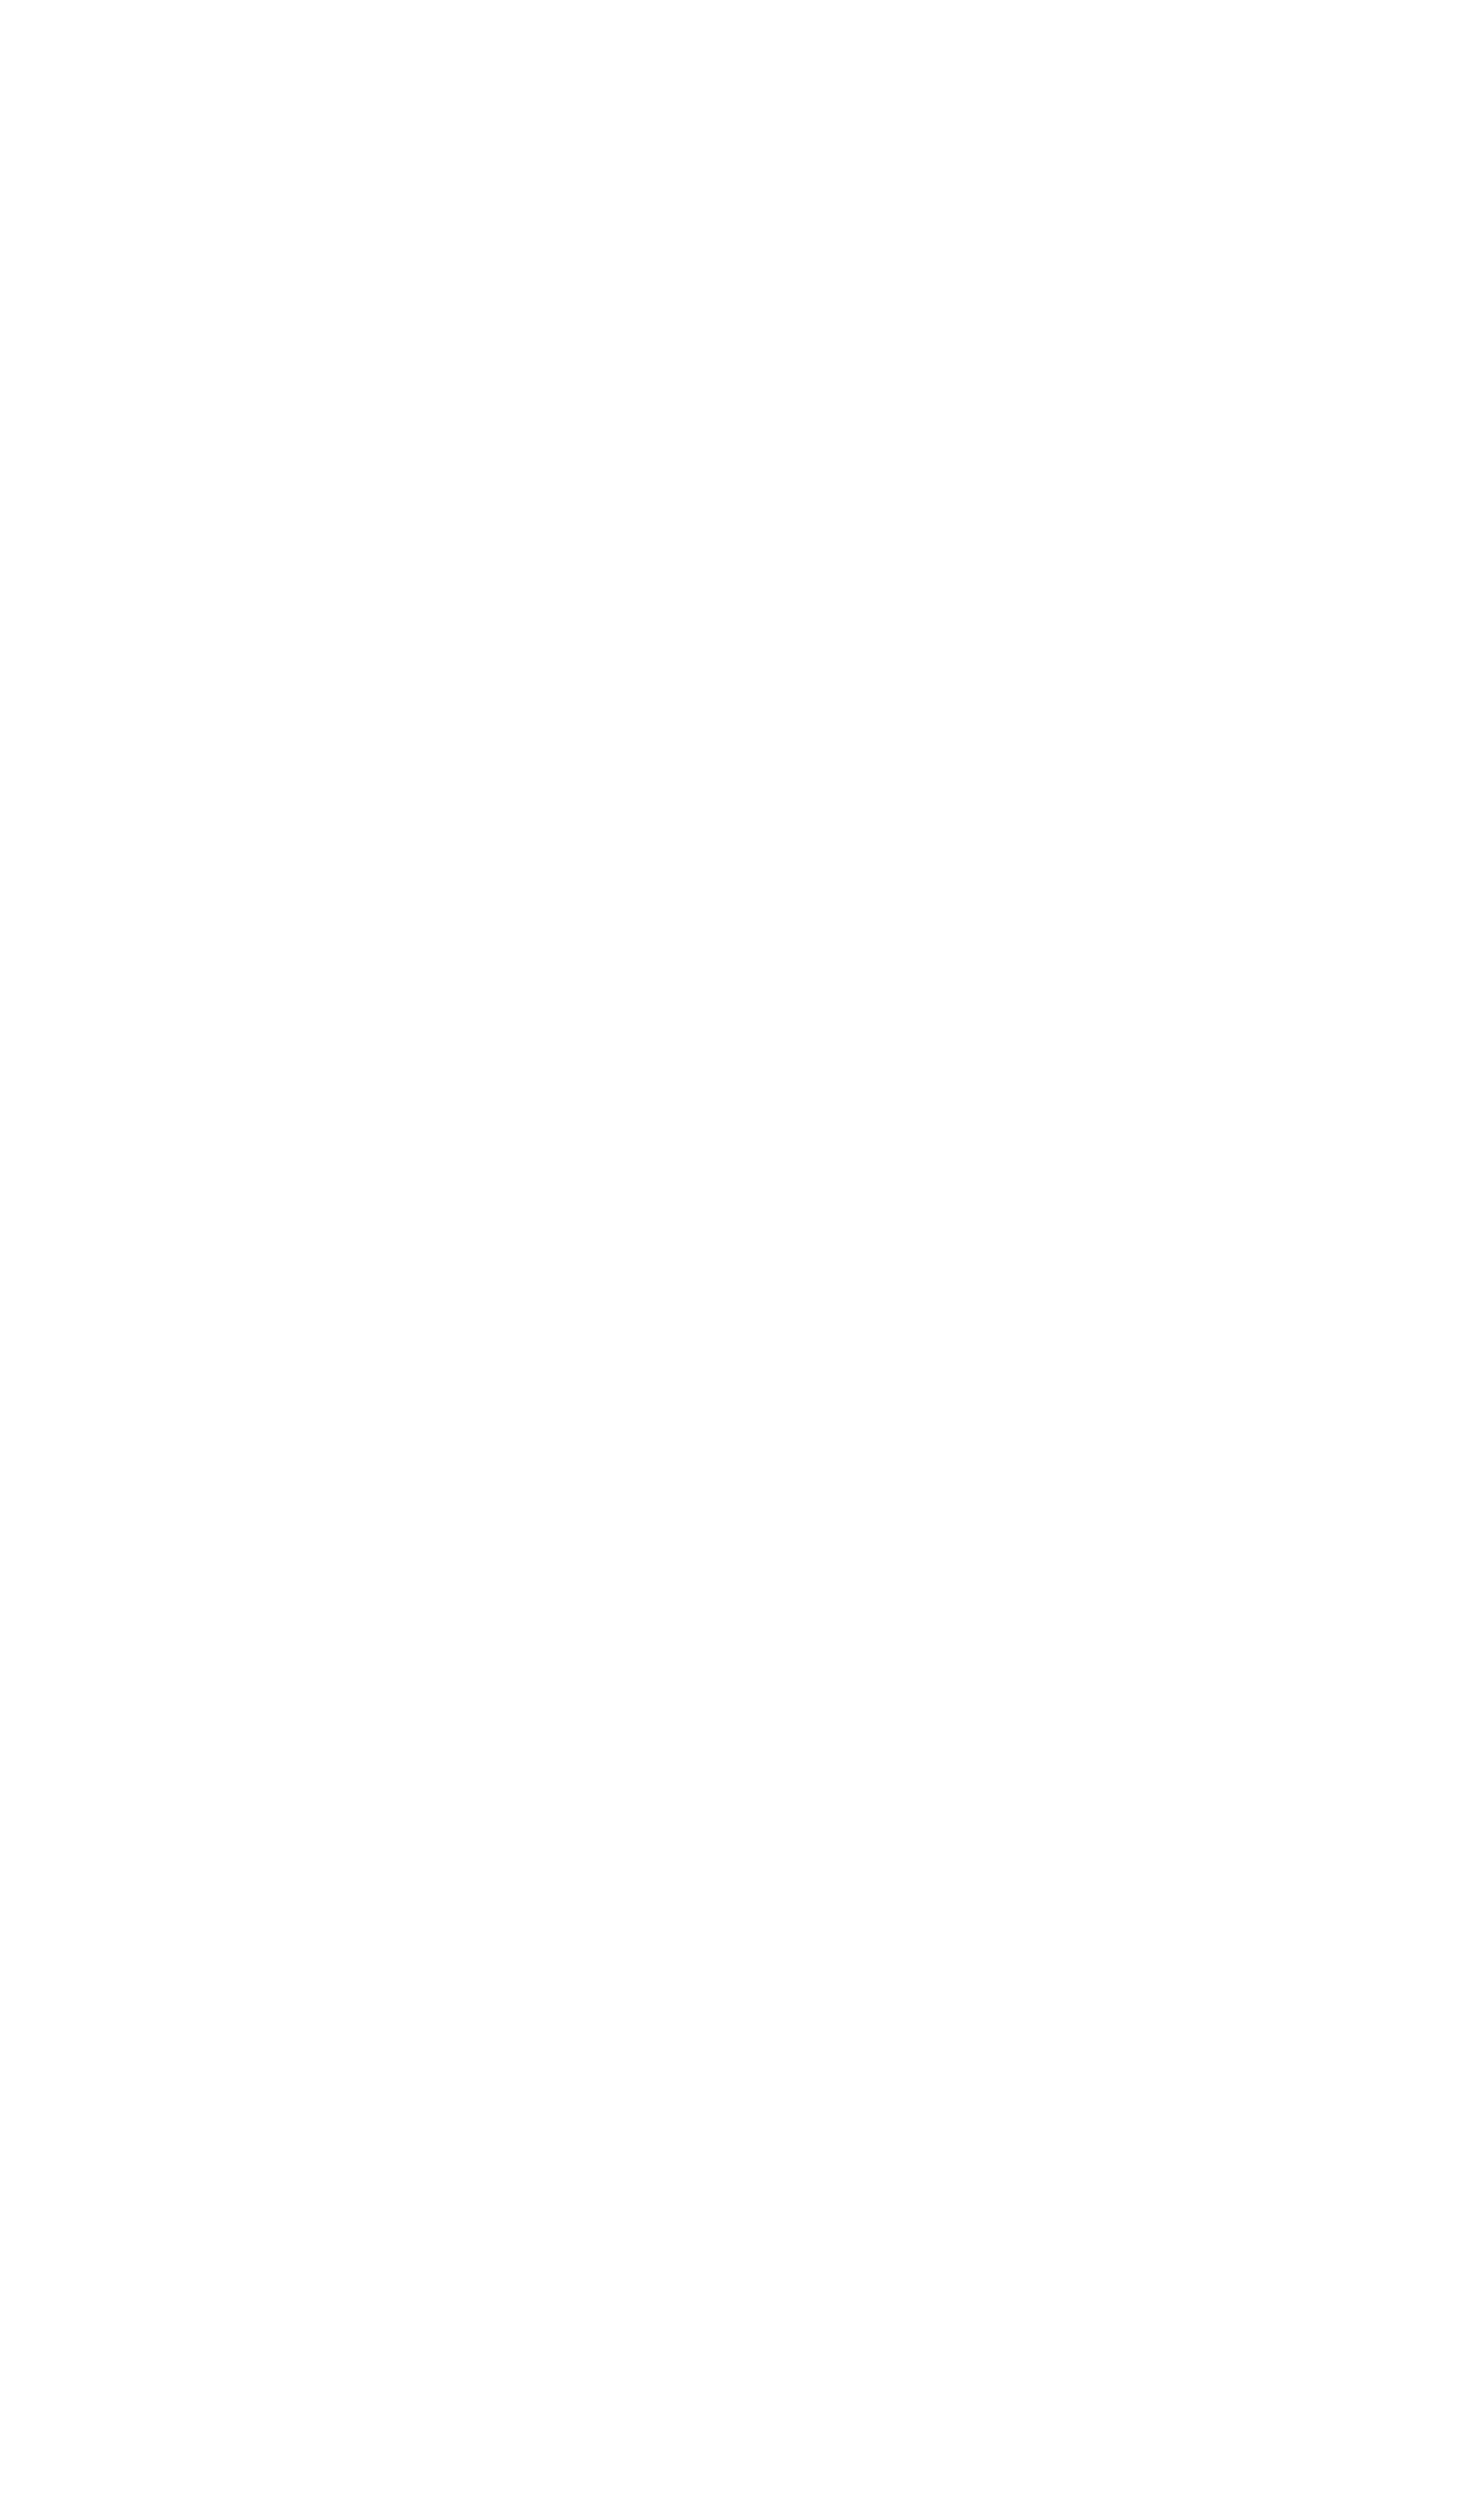 PEFC certificate - Our wood products have quality certificates!